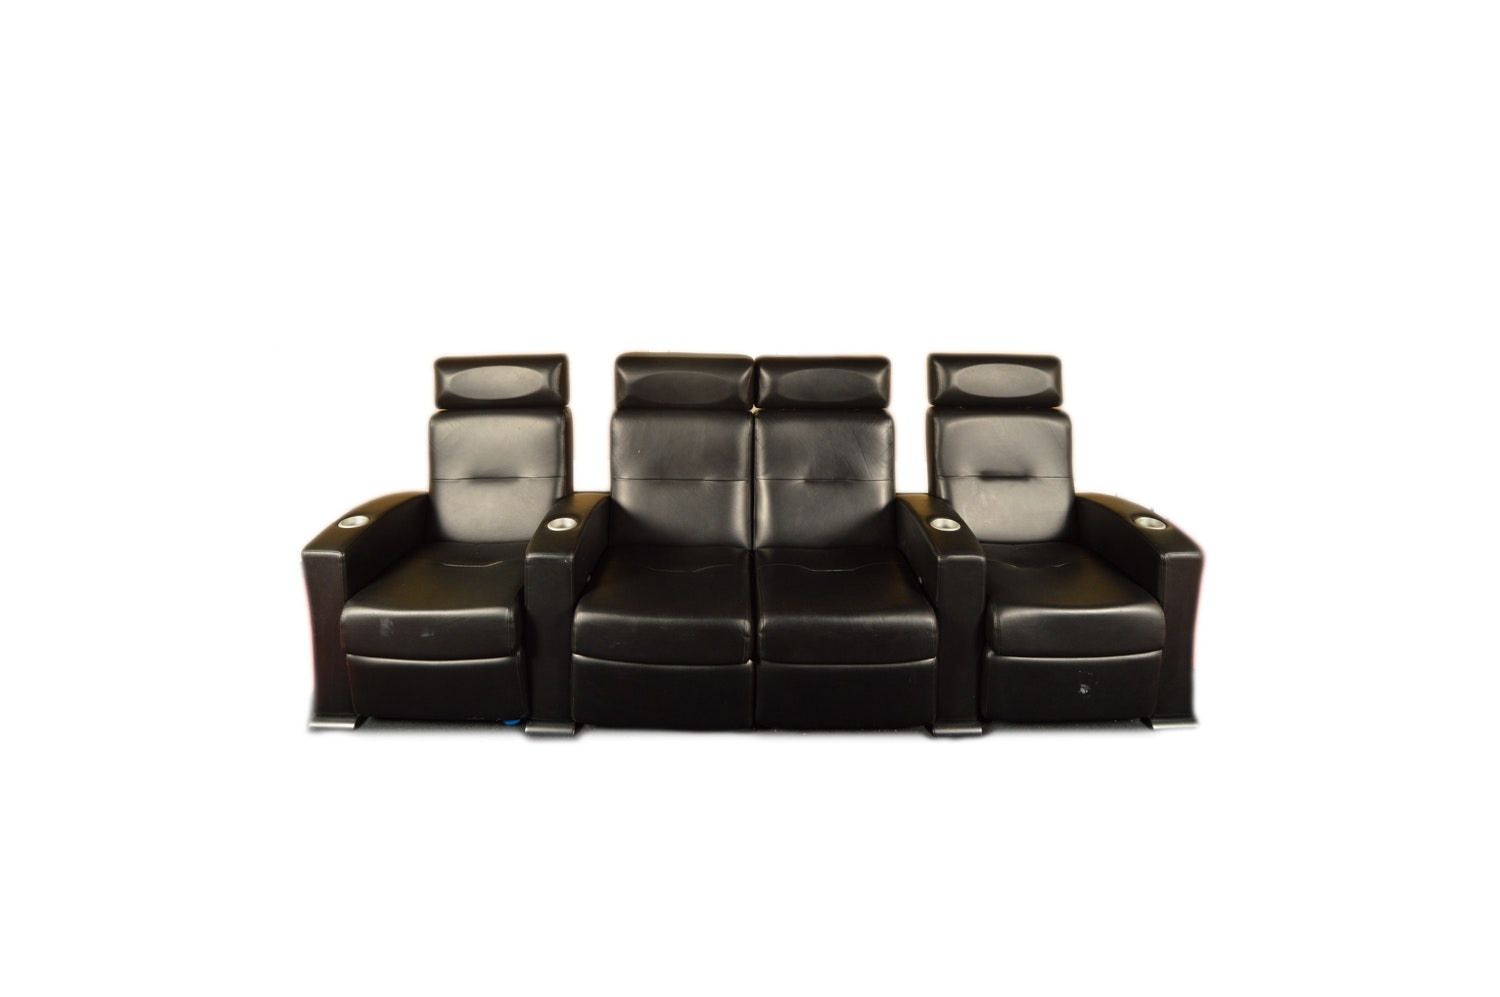 Black Leather Theater Seats